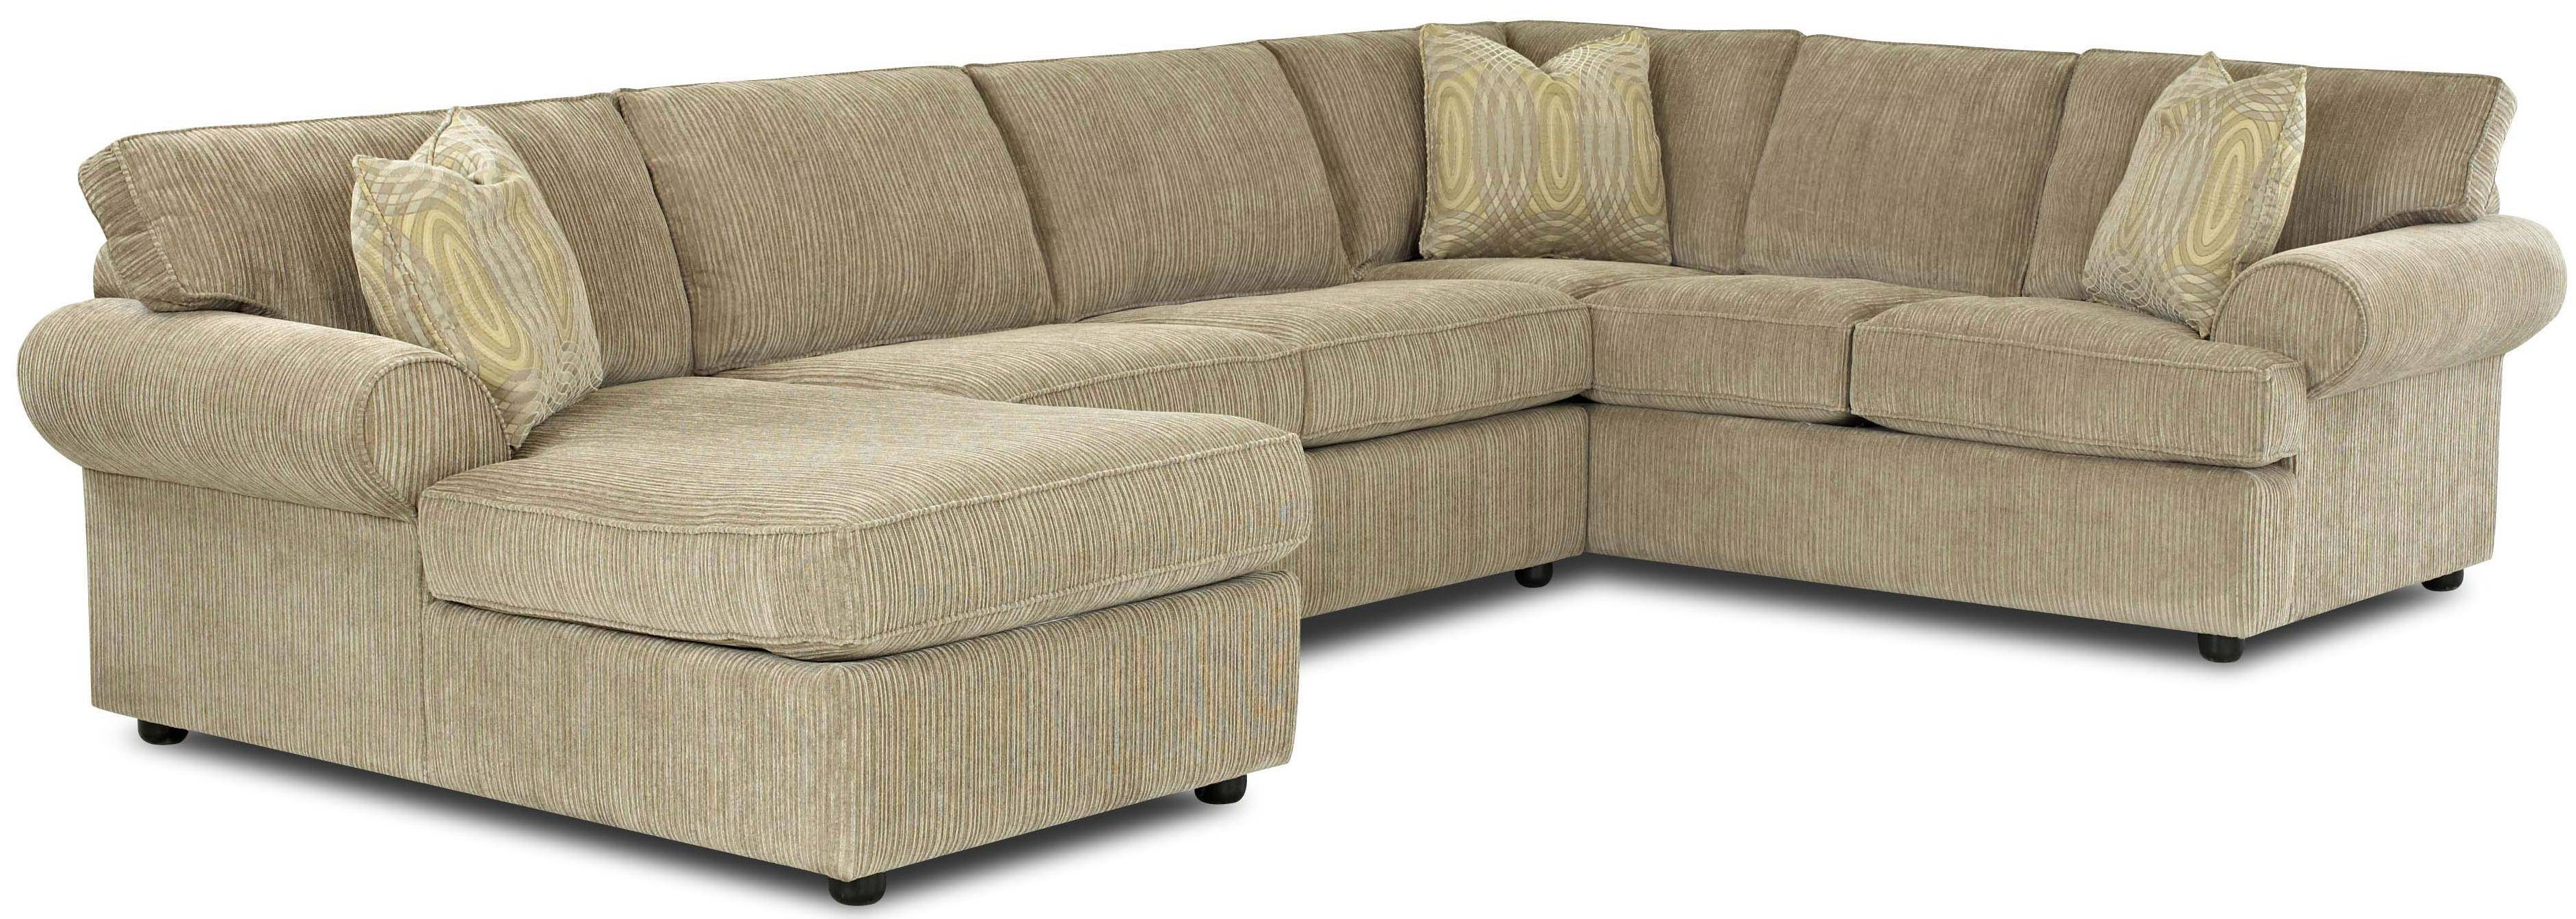 L Shaped Couches. Sectional Sofa Design Recliner Sofas Microfiber within L Shaped Sectional Sleeper Sofa (Image 17 of 25)